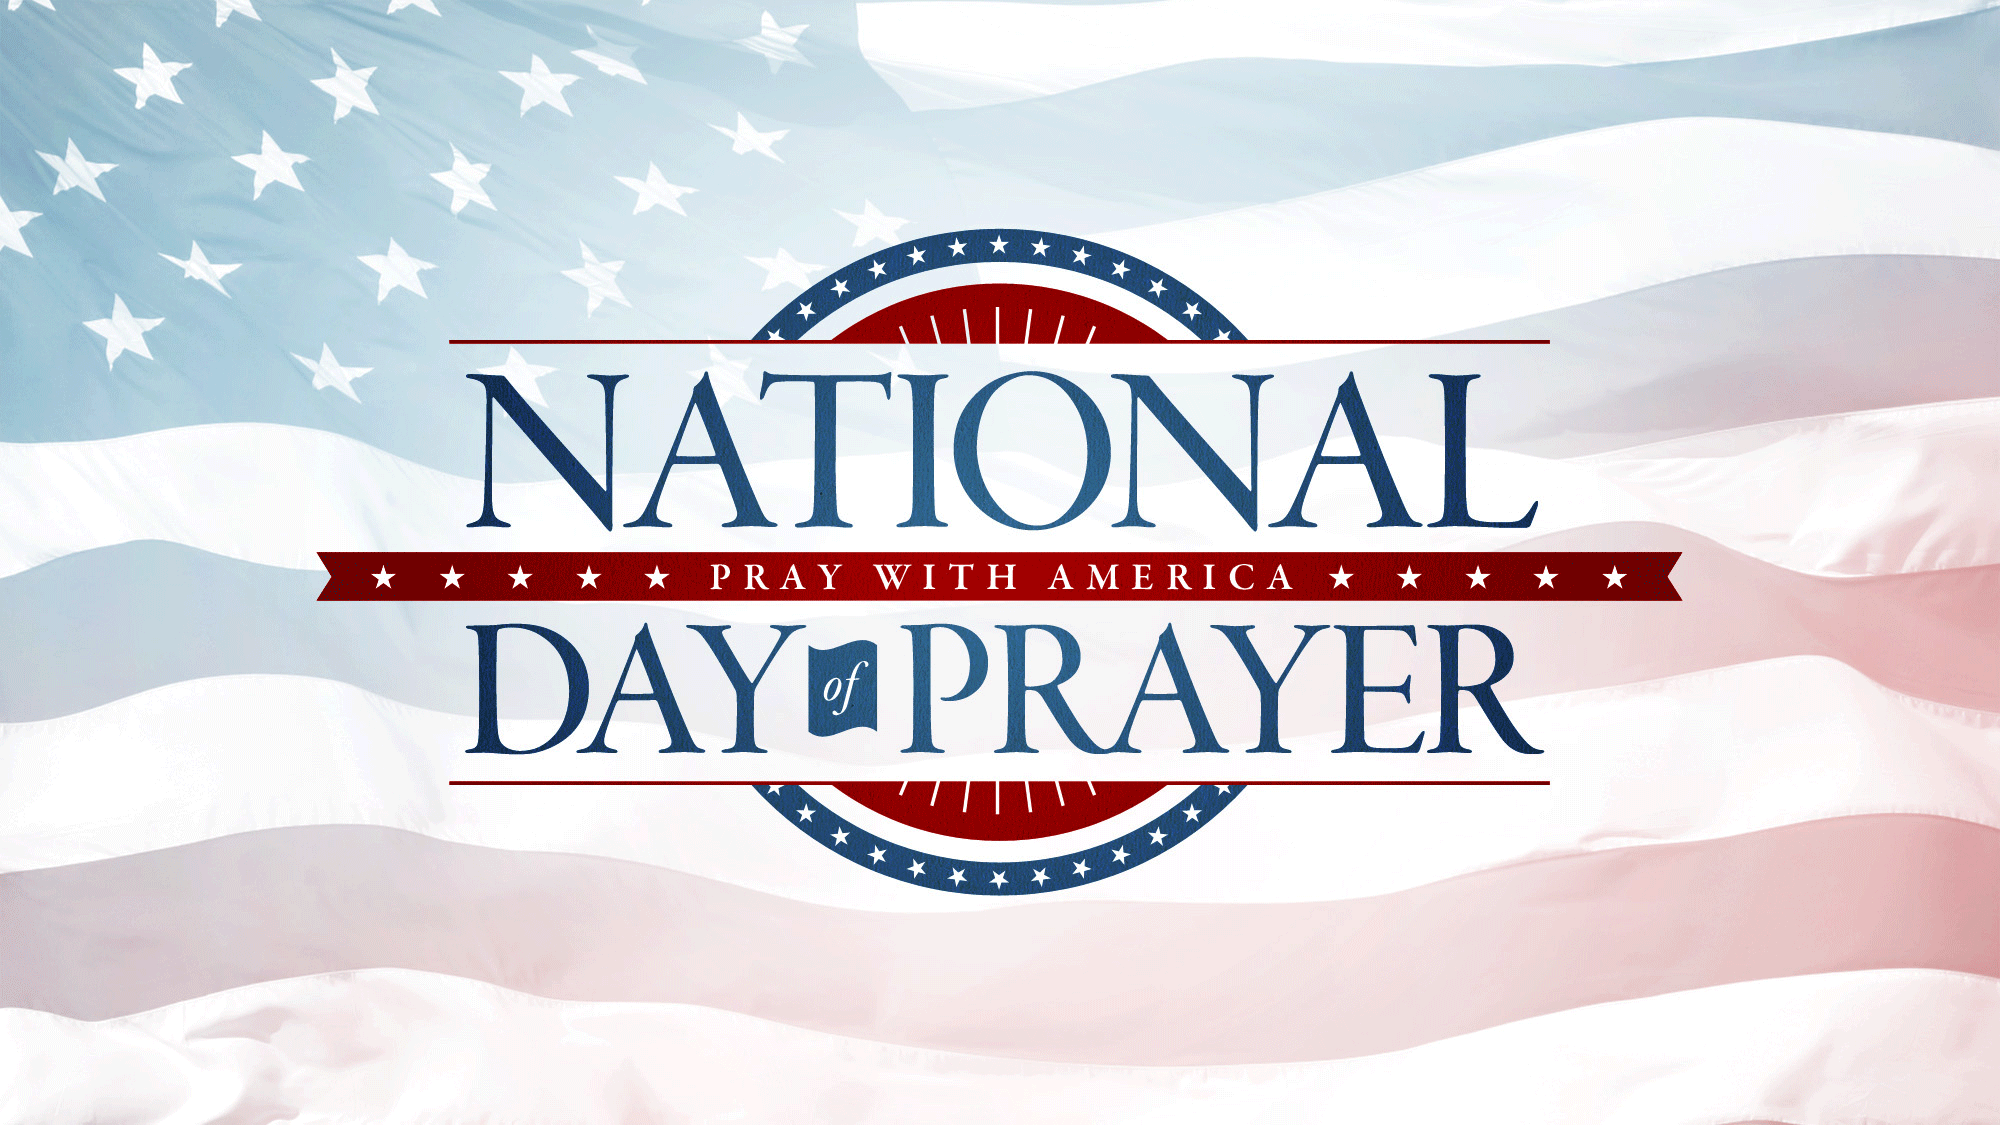 National Day of Prayer Interactive Prayer Experience.